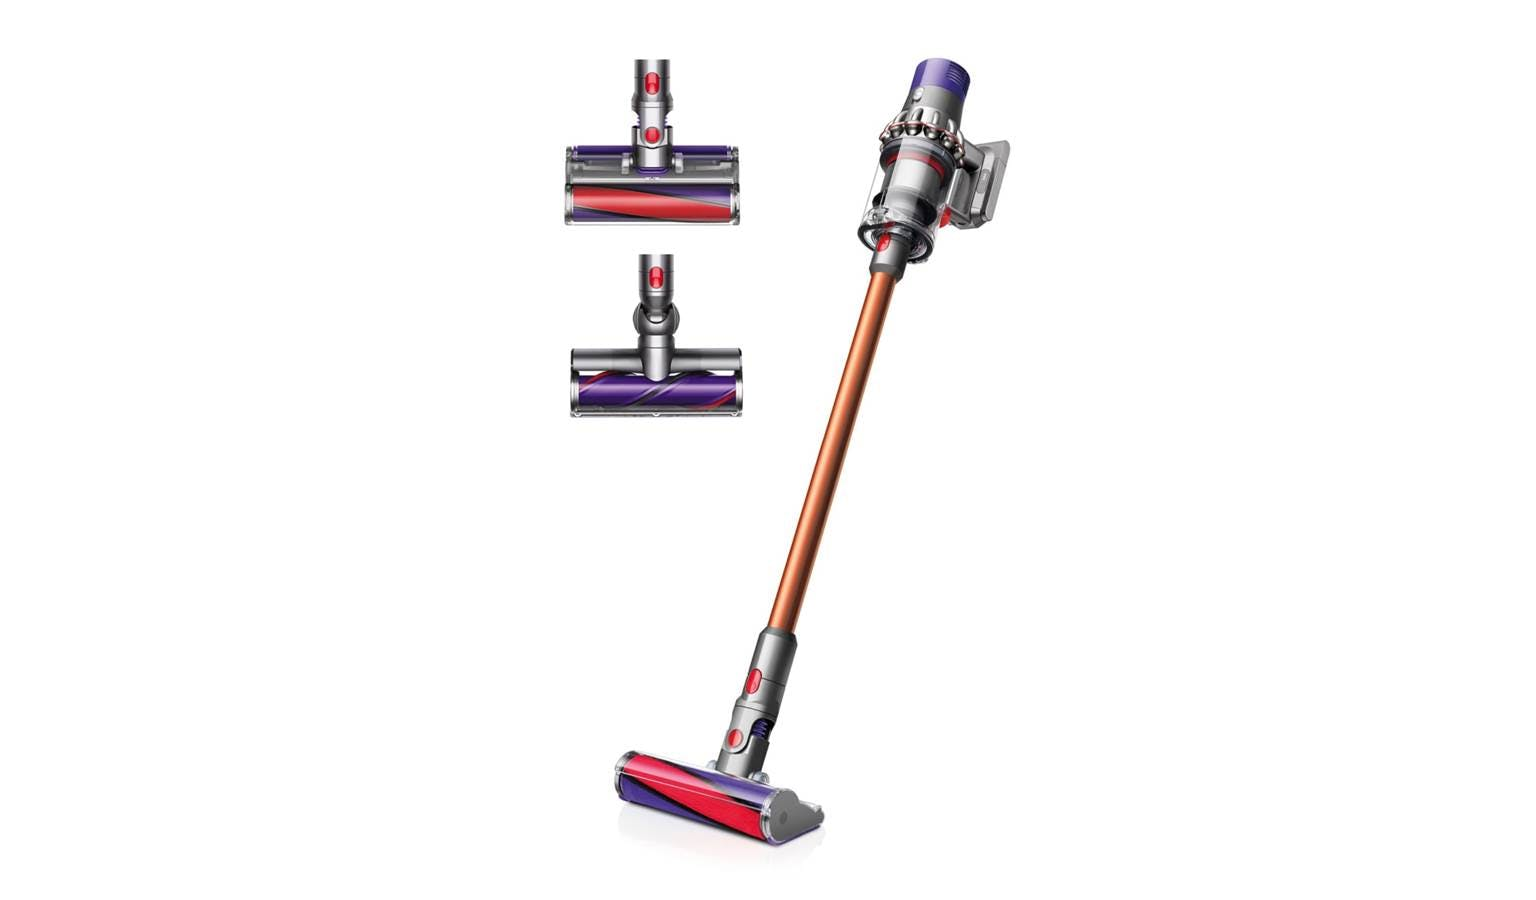 Dyson Cyclone V10 Absolute Cord-Free Vacuum Cleaner